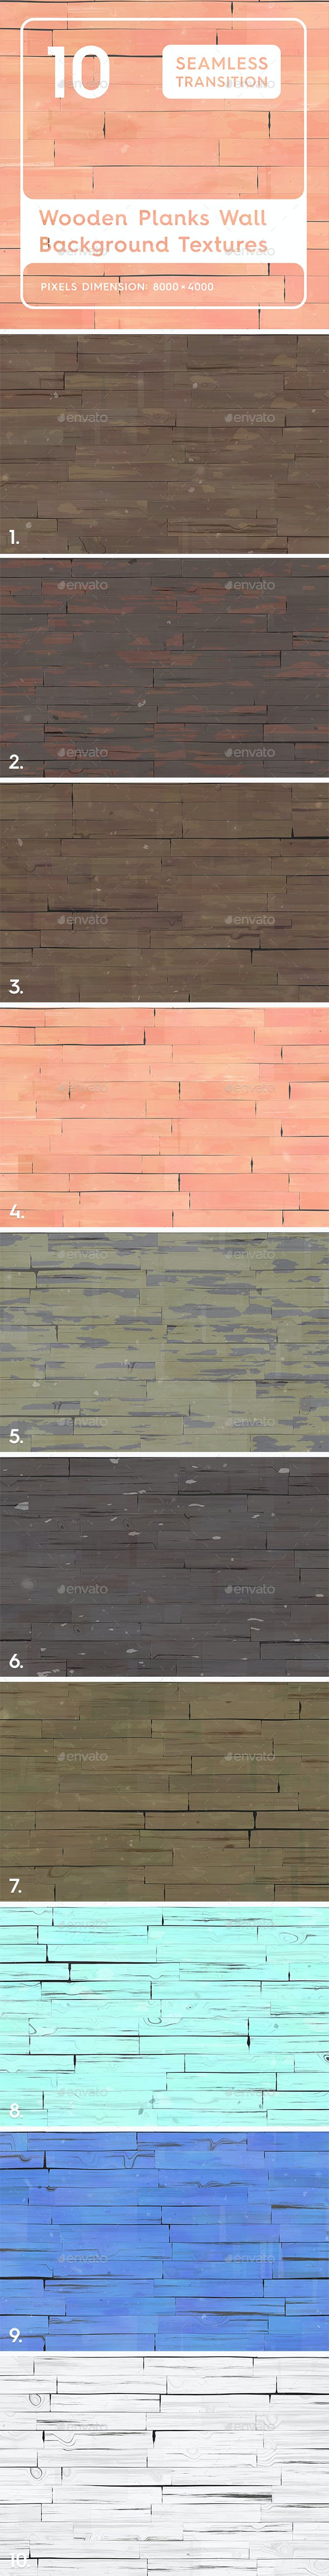 10 Wooden Planks Wall Backgrounds - 3DOcean Item for Sale